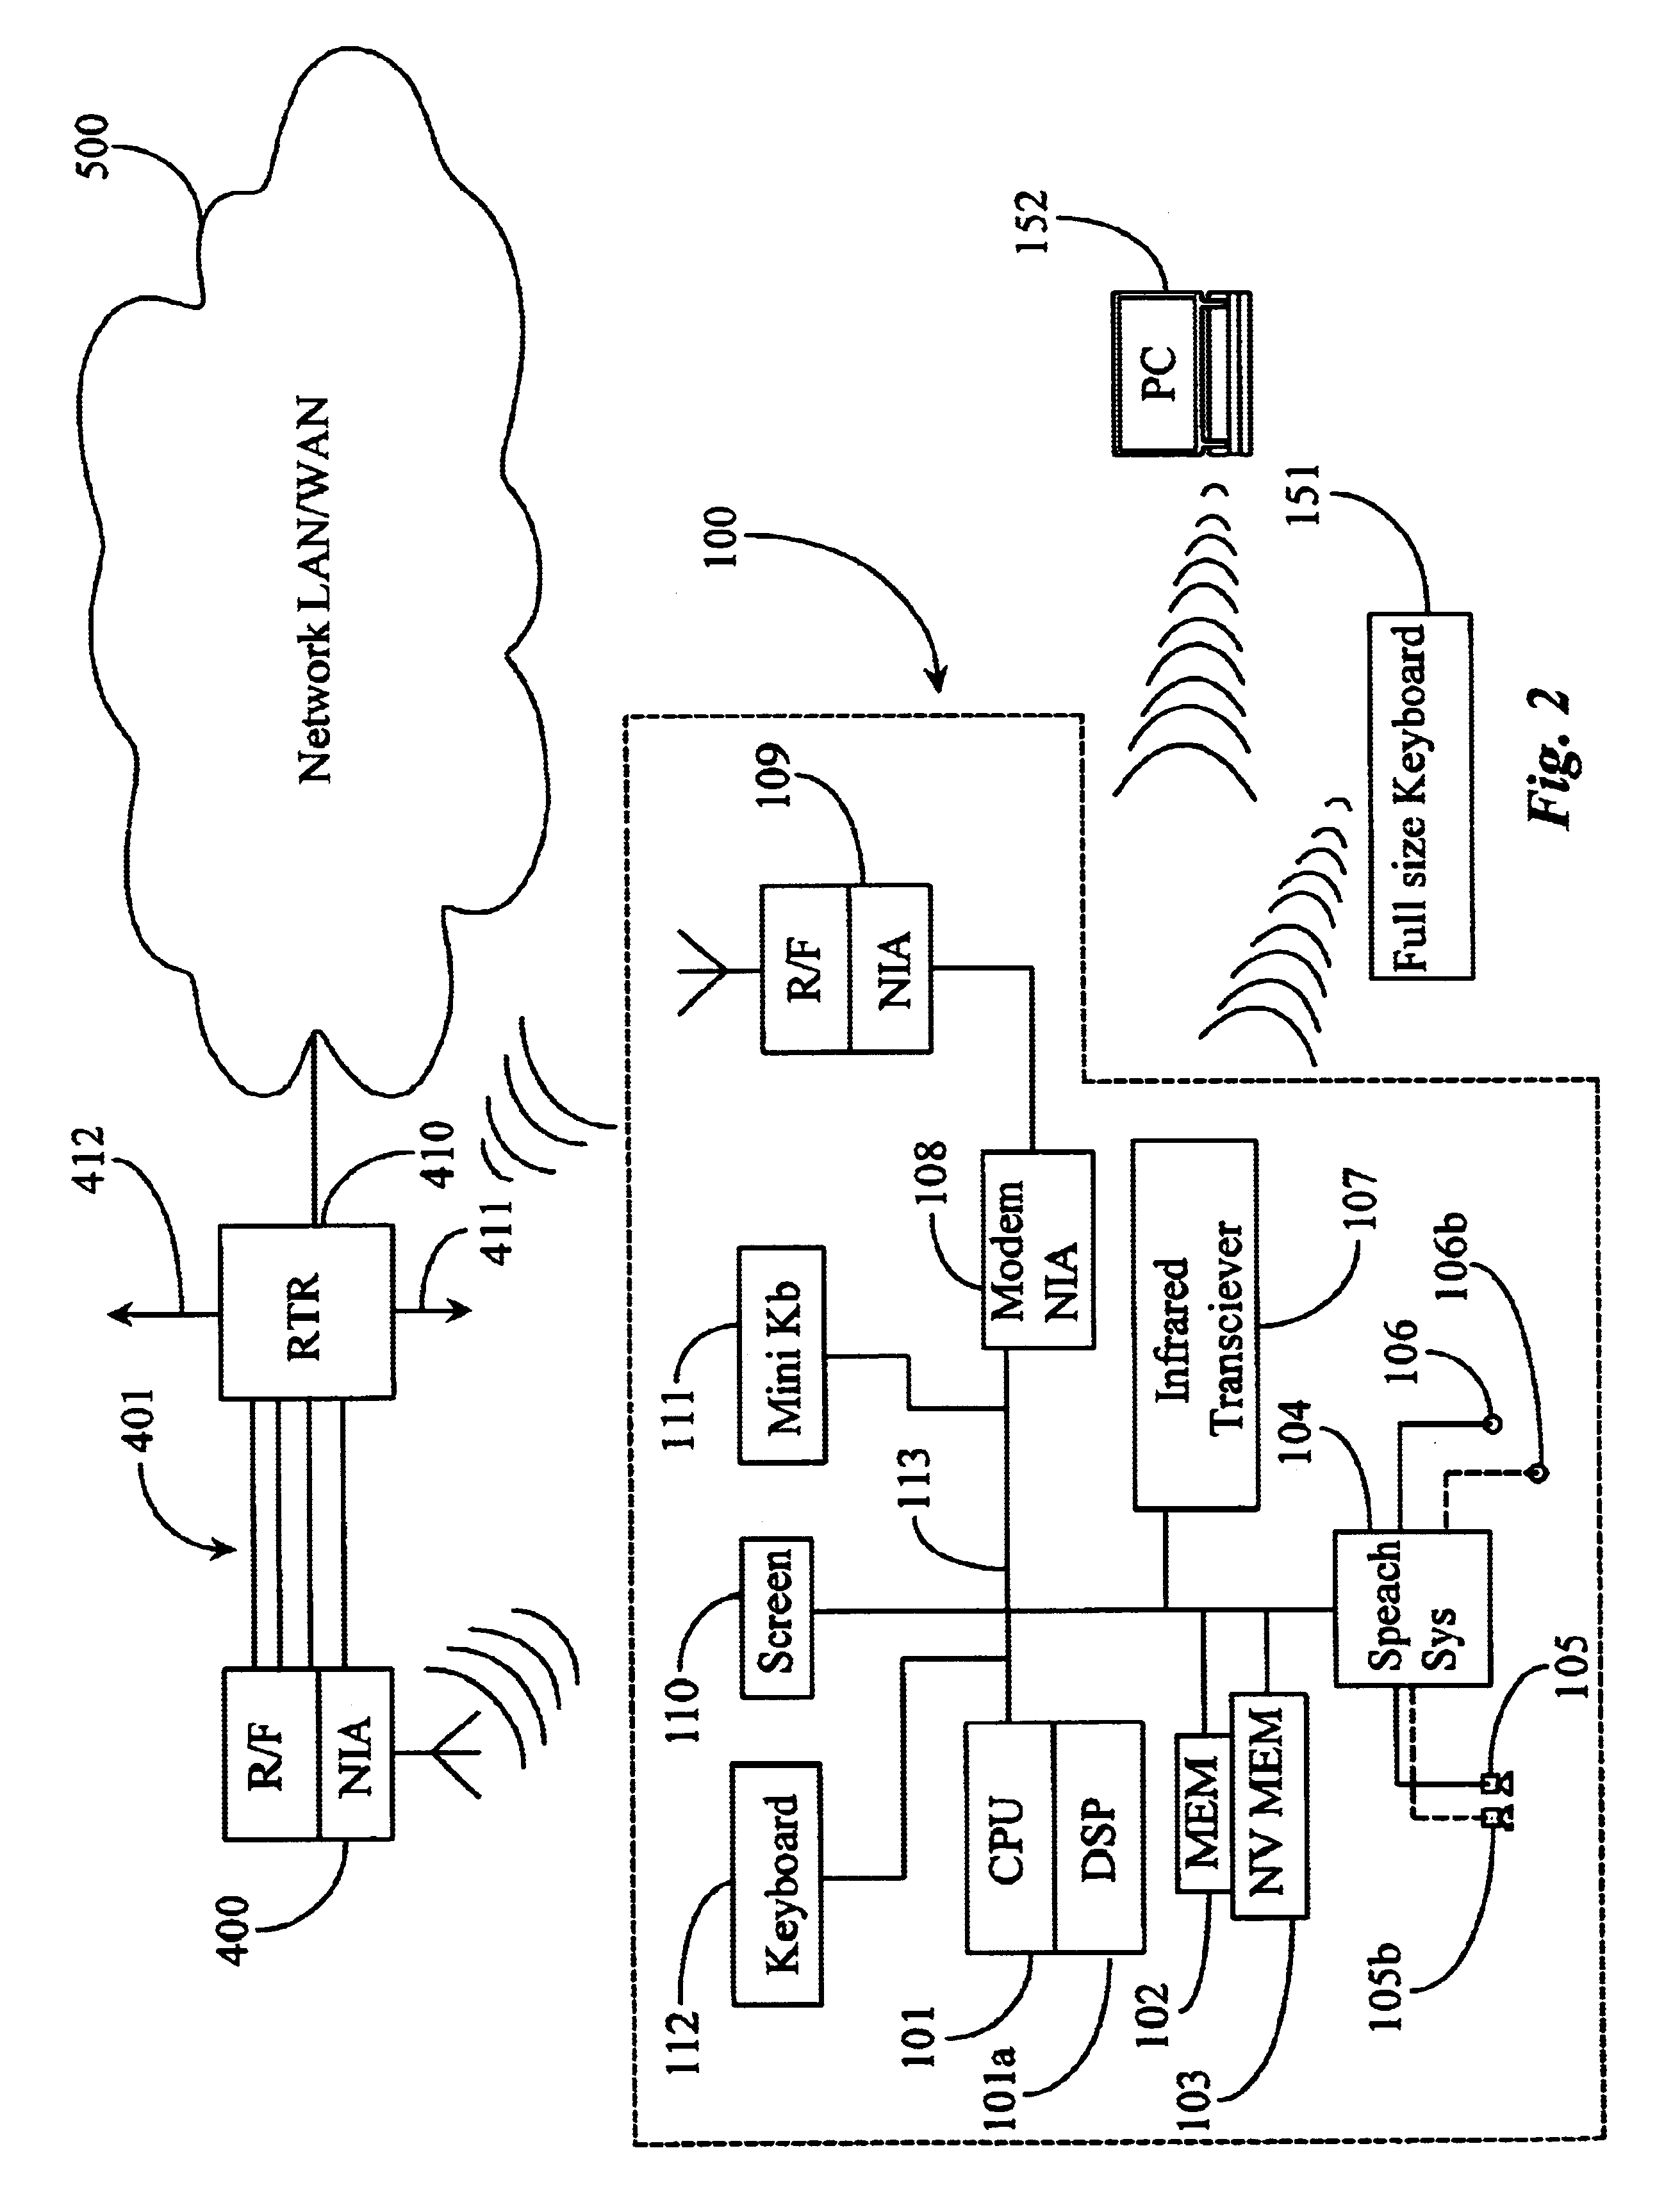 Patent Us 6625126 B1 An Electrical Design Software For Automatic One Line Diagrams Gsn Images